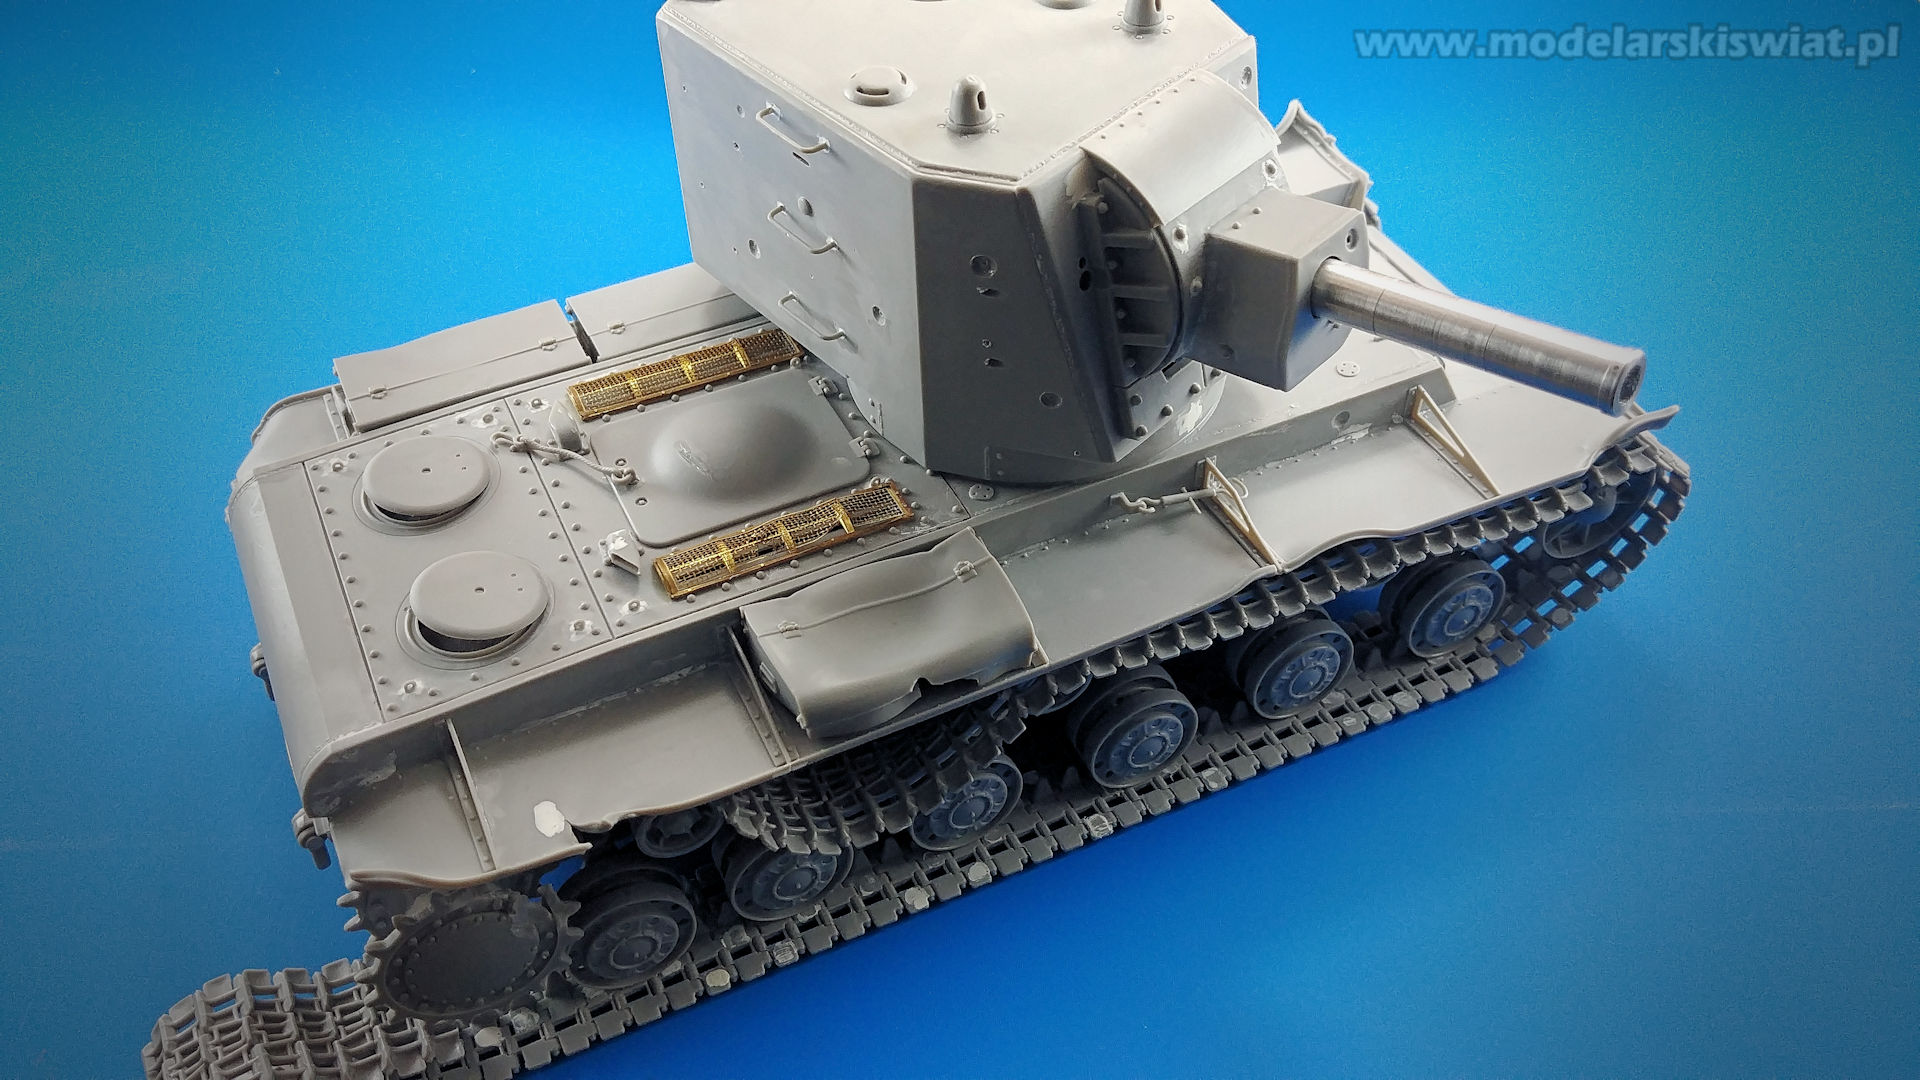 Gotowy model czołgu KW-2 Big Turret w skali 1/35